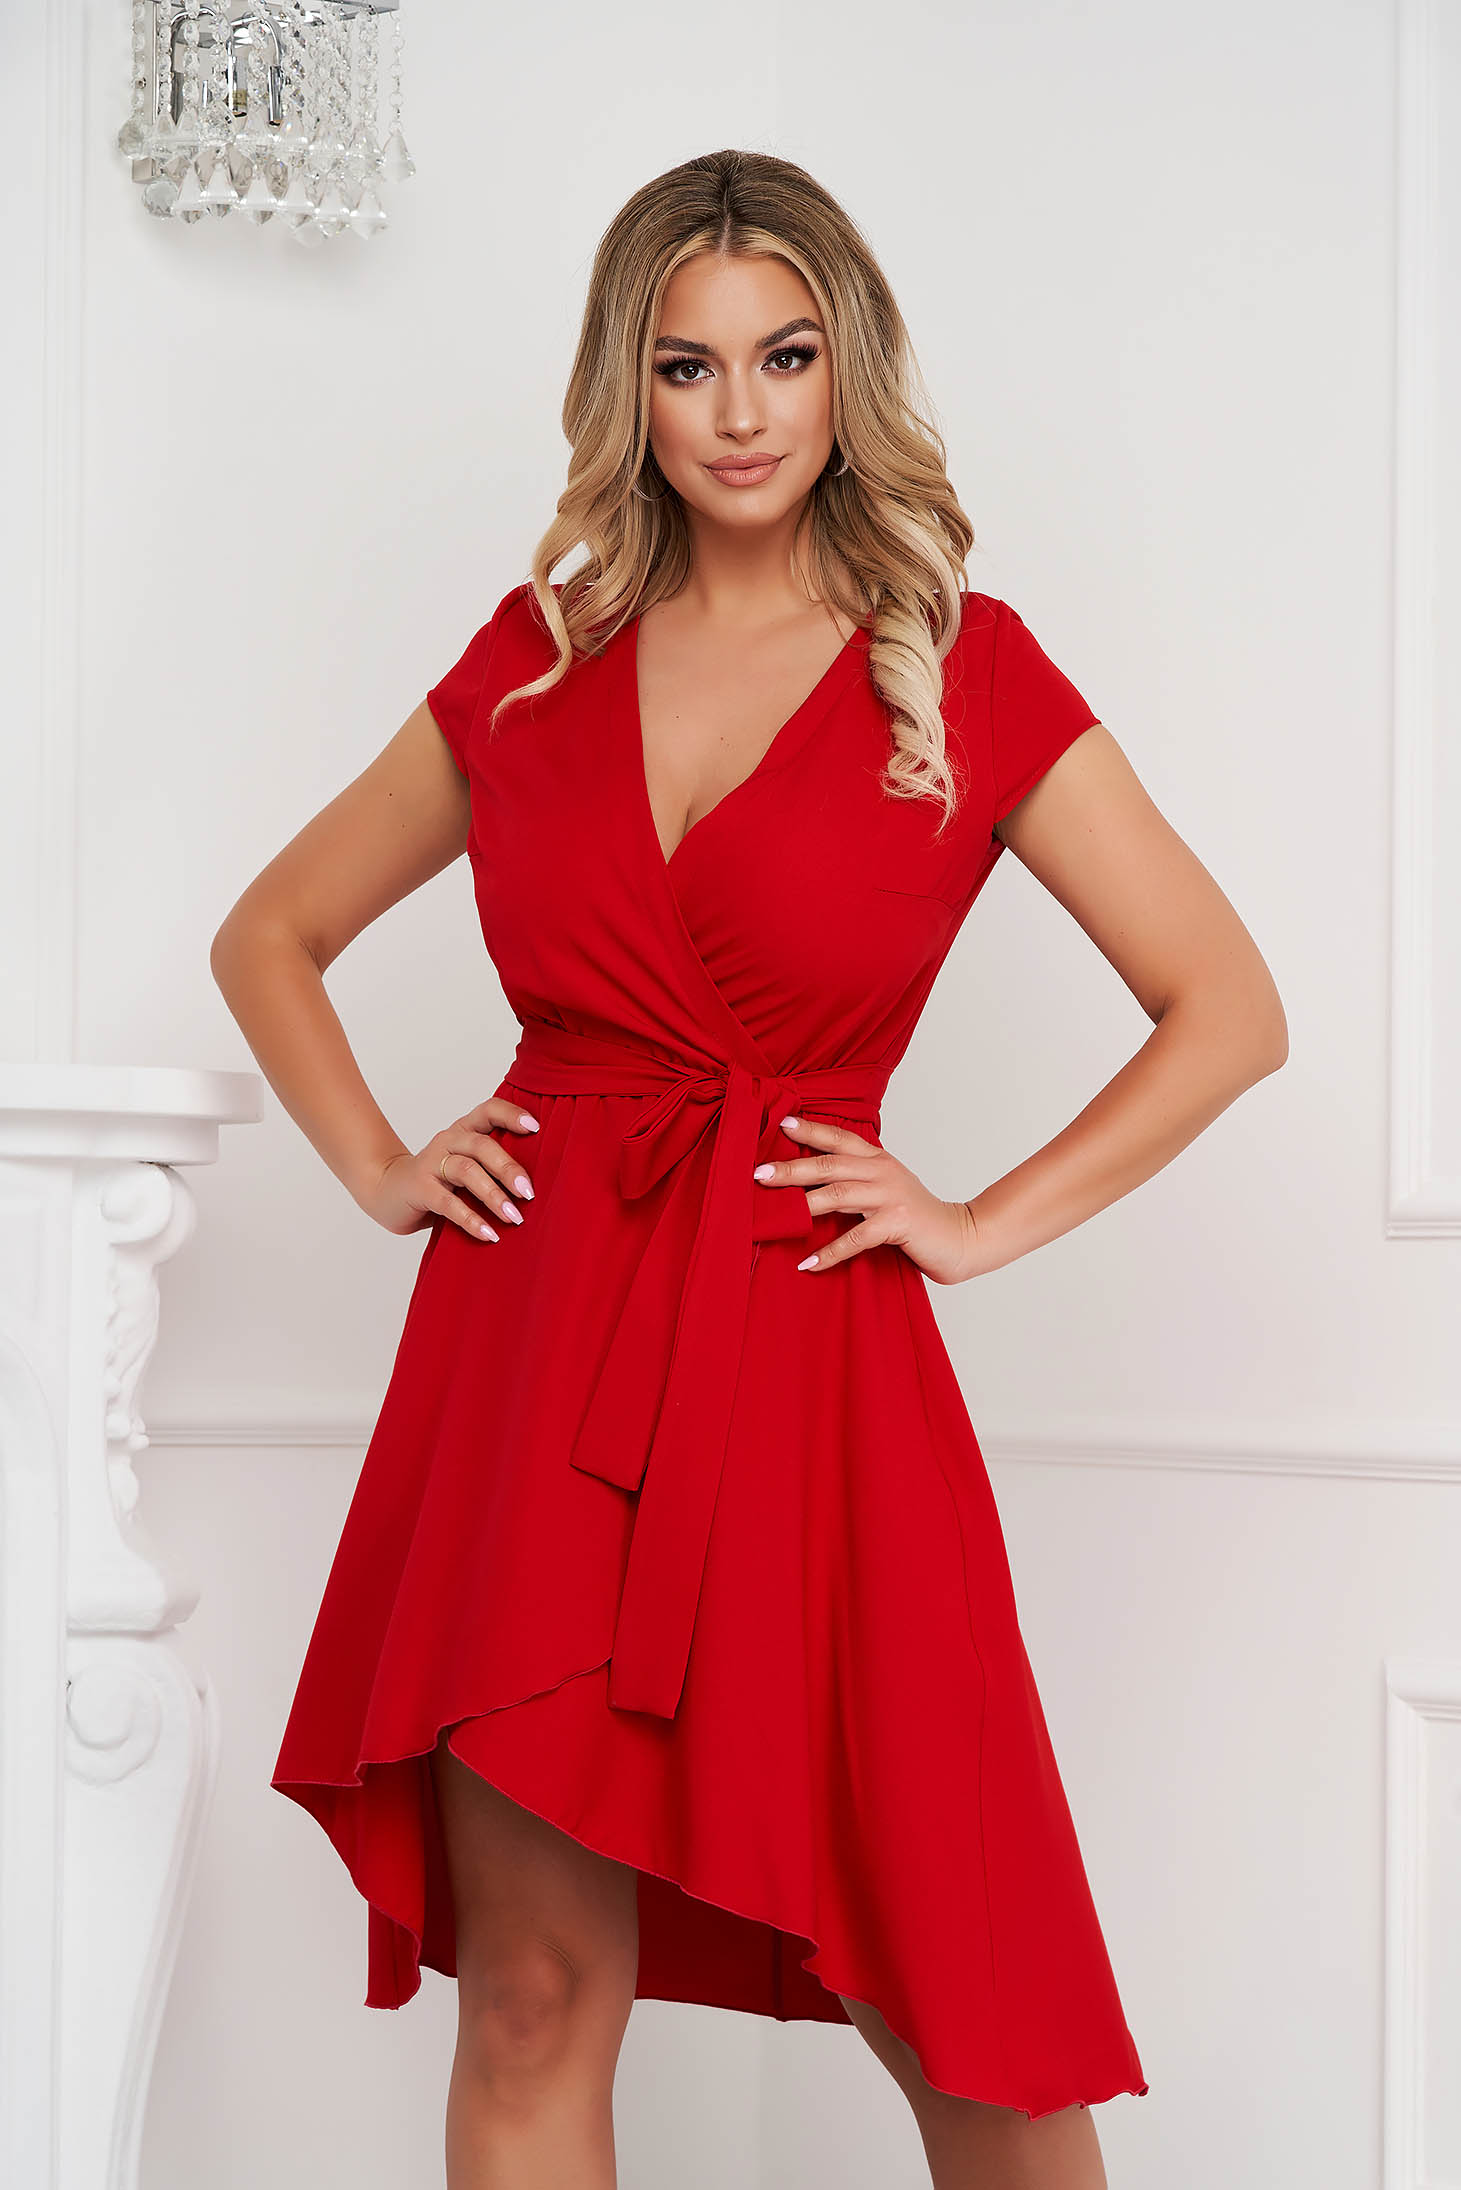 StarShinerS red dress asymmetrical slightly elastic fabric with deep cleavage